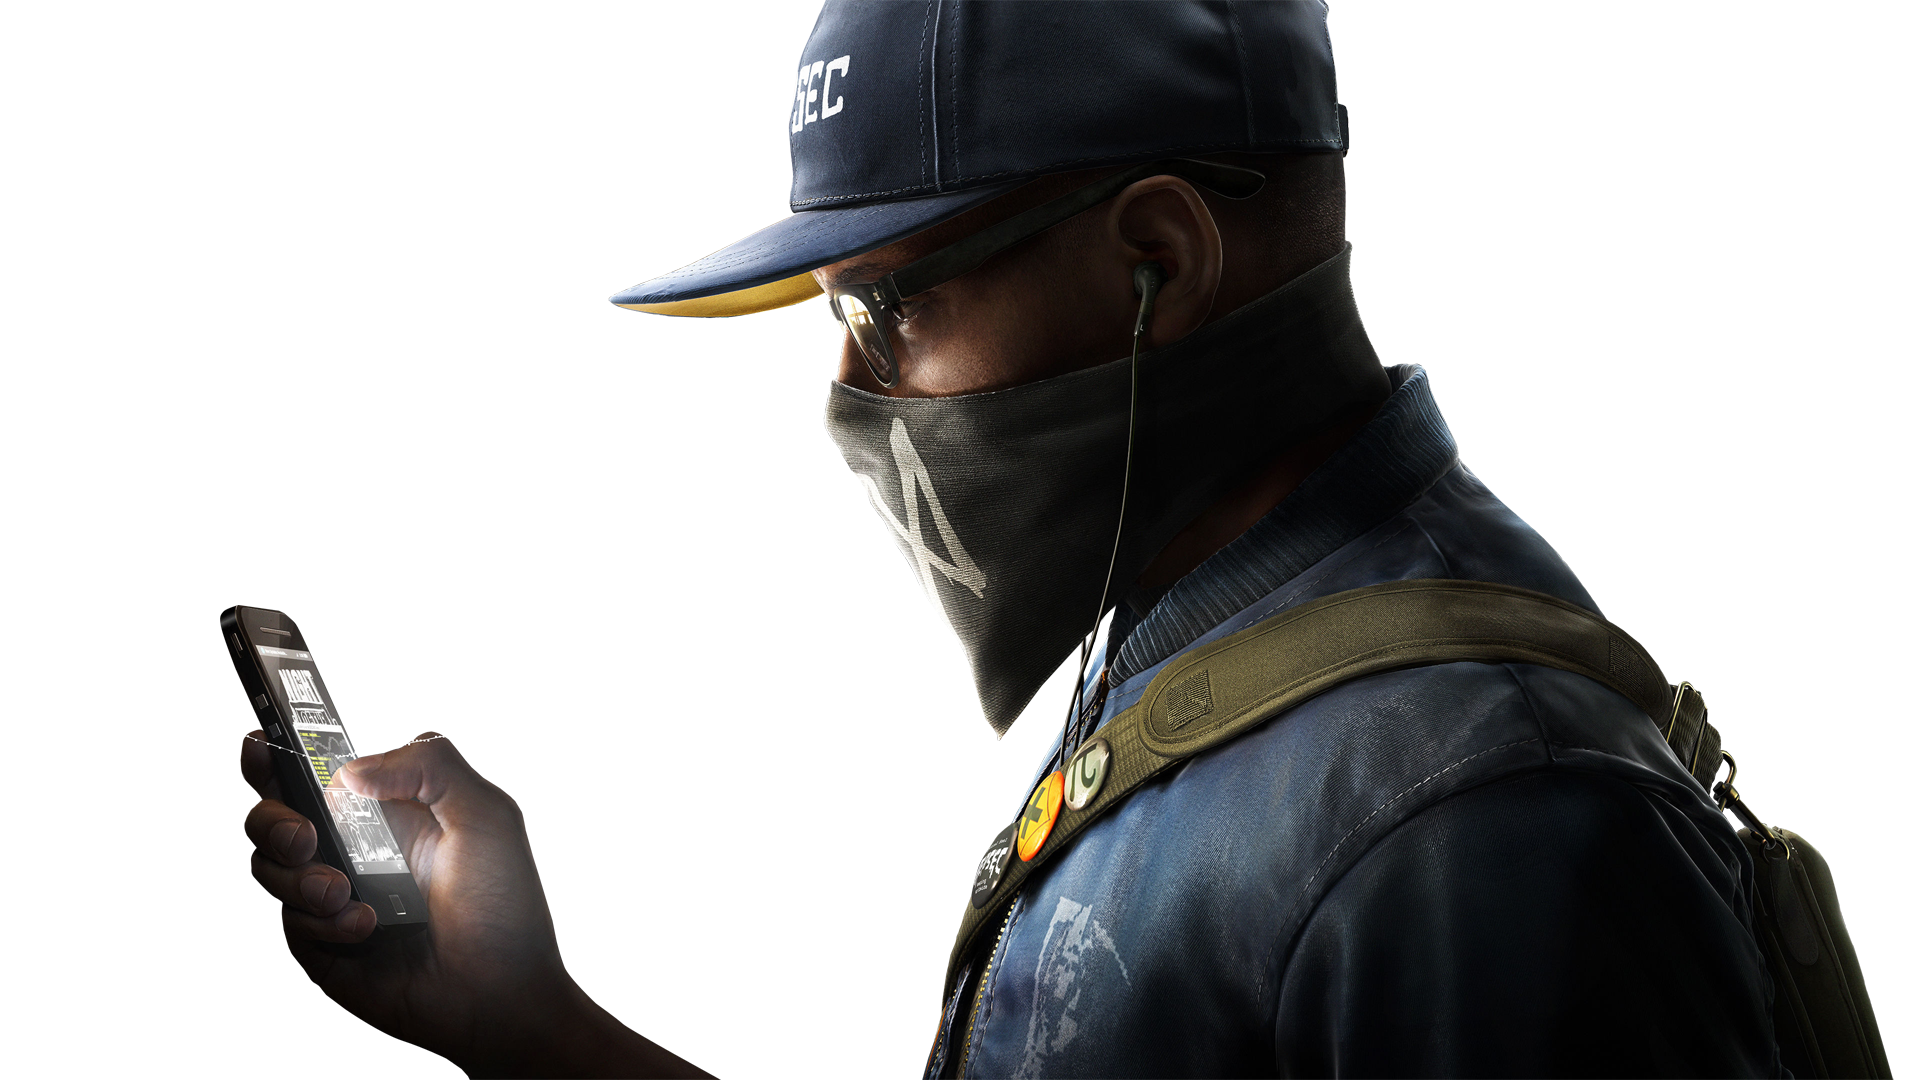 Watch dogs 2 png. Hd transparent images pluspng